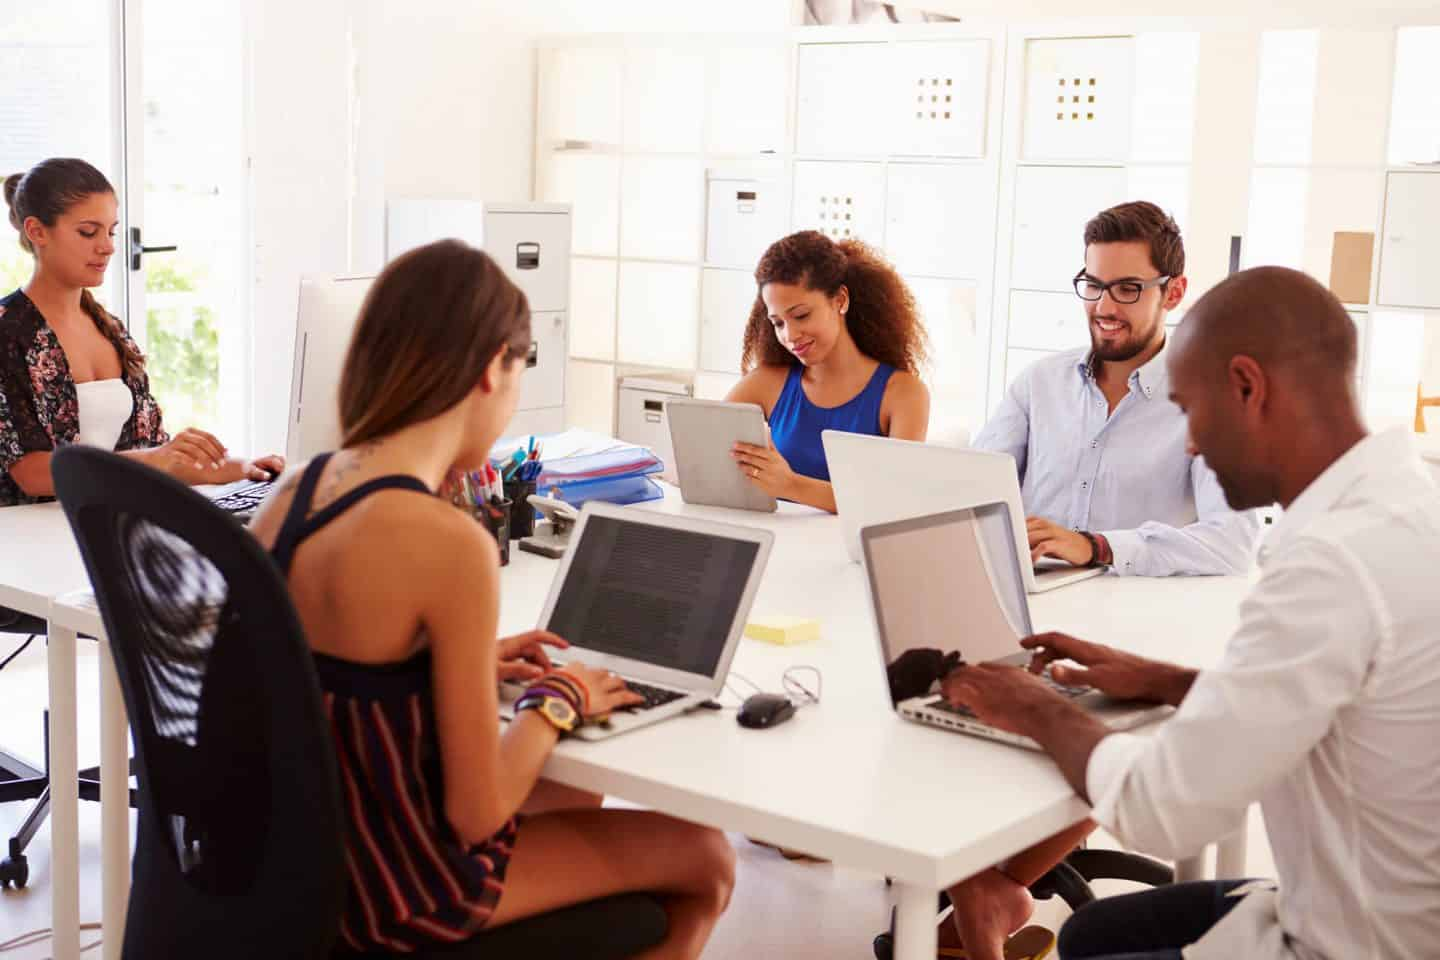 Coworking Connections - How To Network Effectively In A Shared Office Space